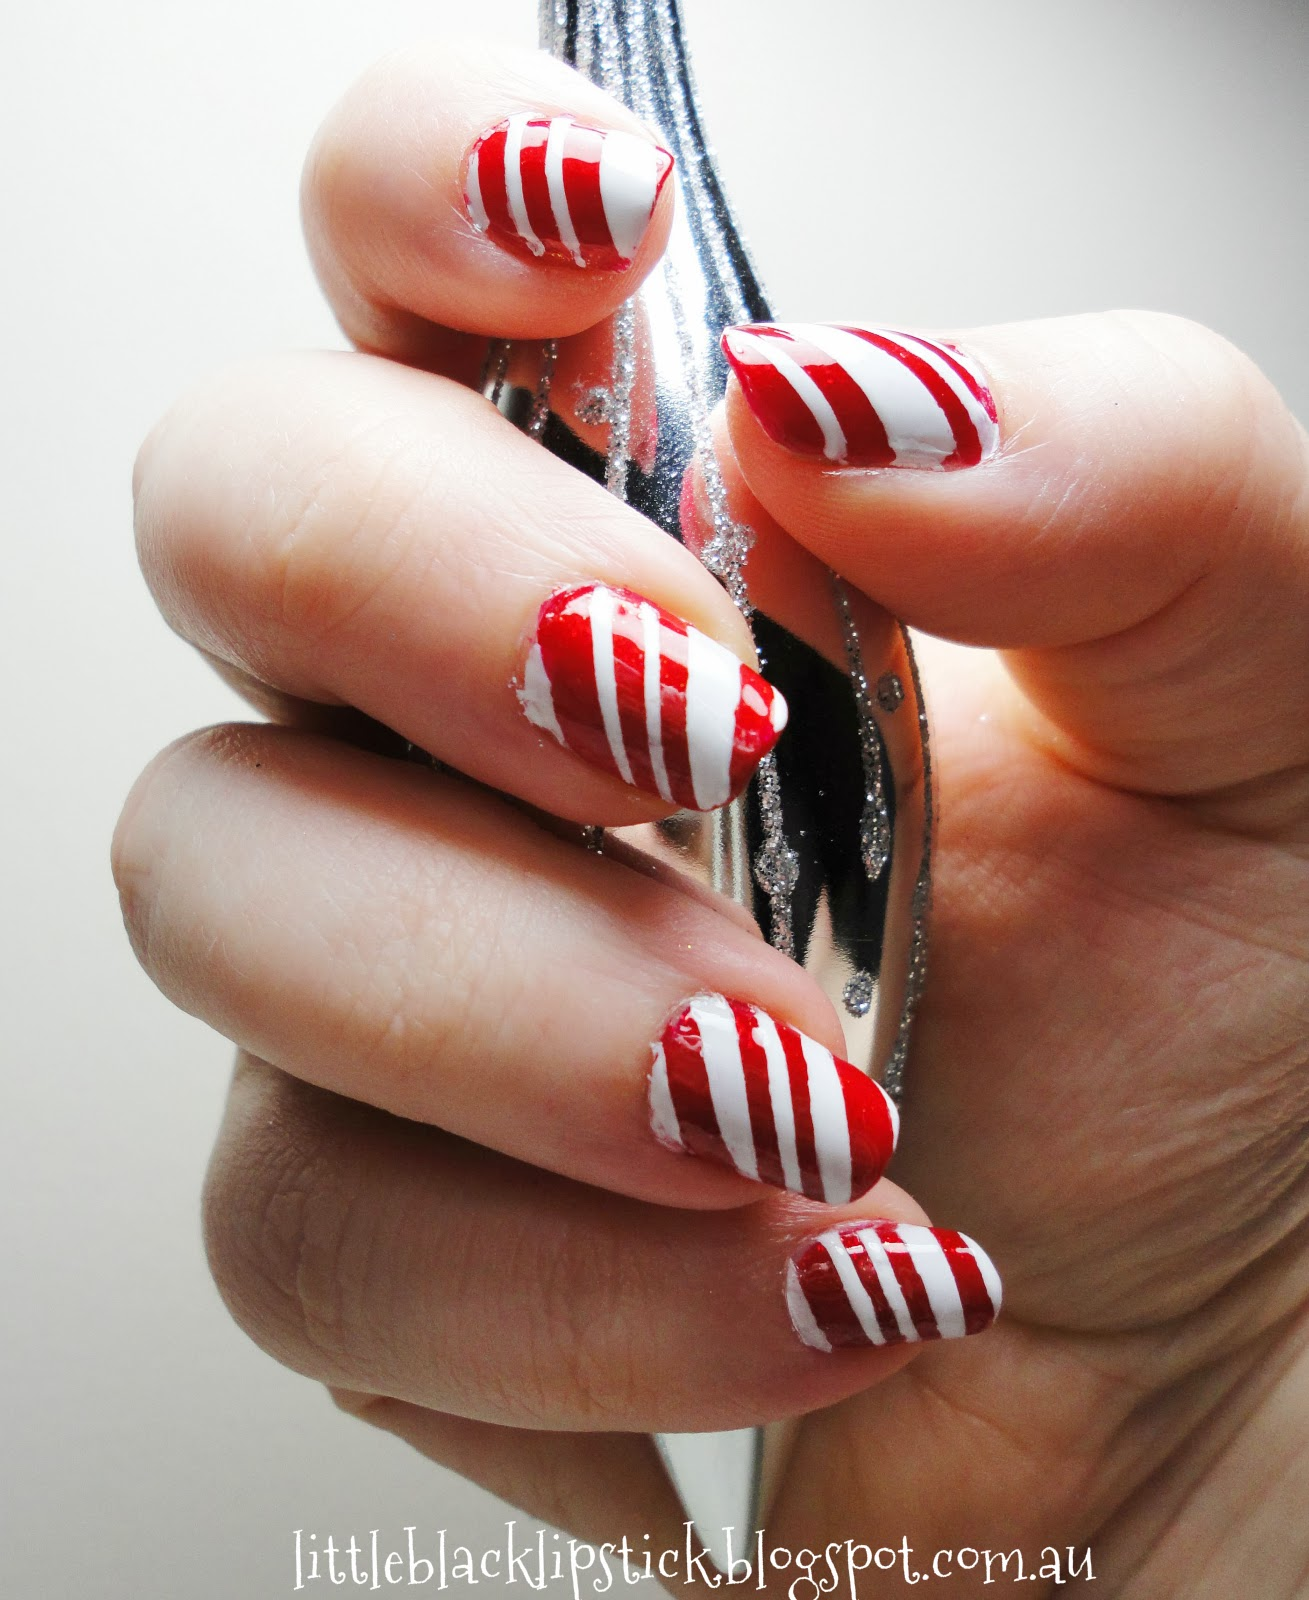 Holiday Nail Art Tutorials: Little Black Lipstick: Easy Candy Cane Christmas Nail Art